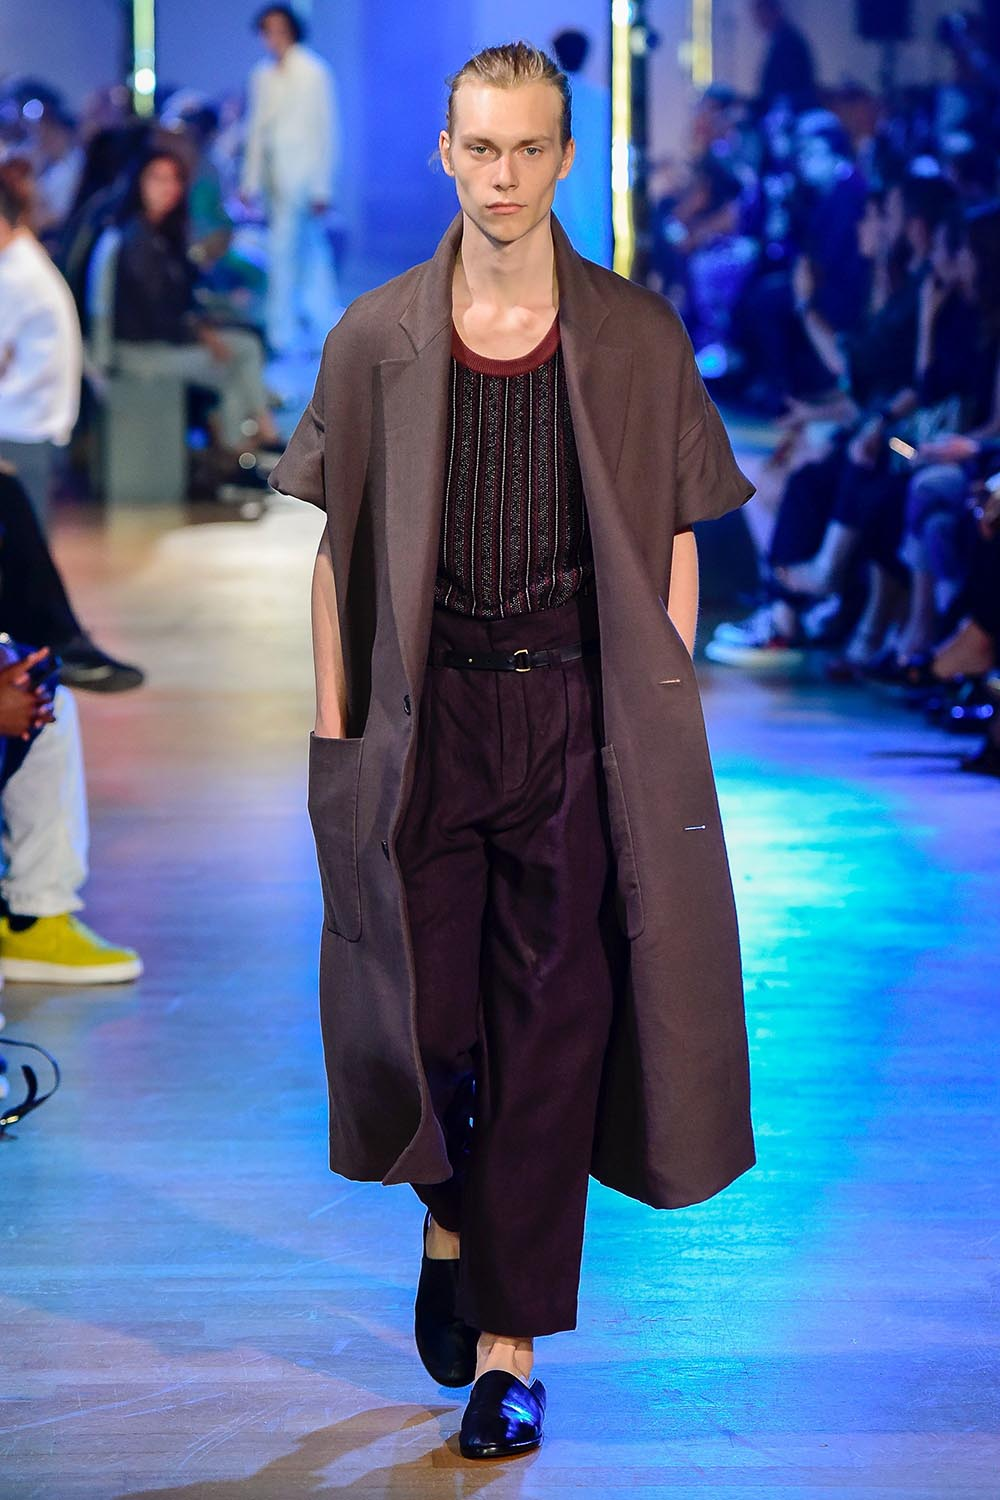 Cerruti 1881 Paris Fashion Week Men's SS19 - Sagaboi - Look 13